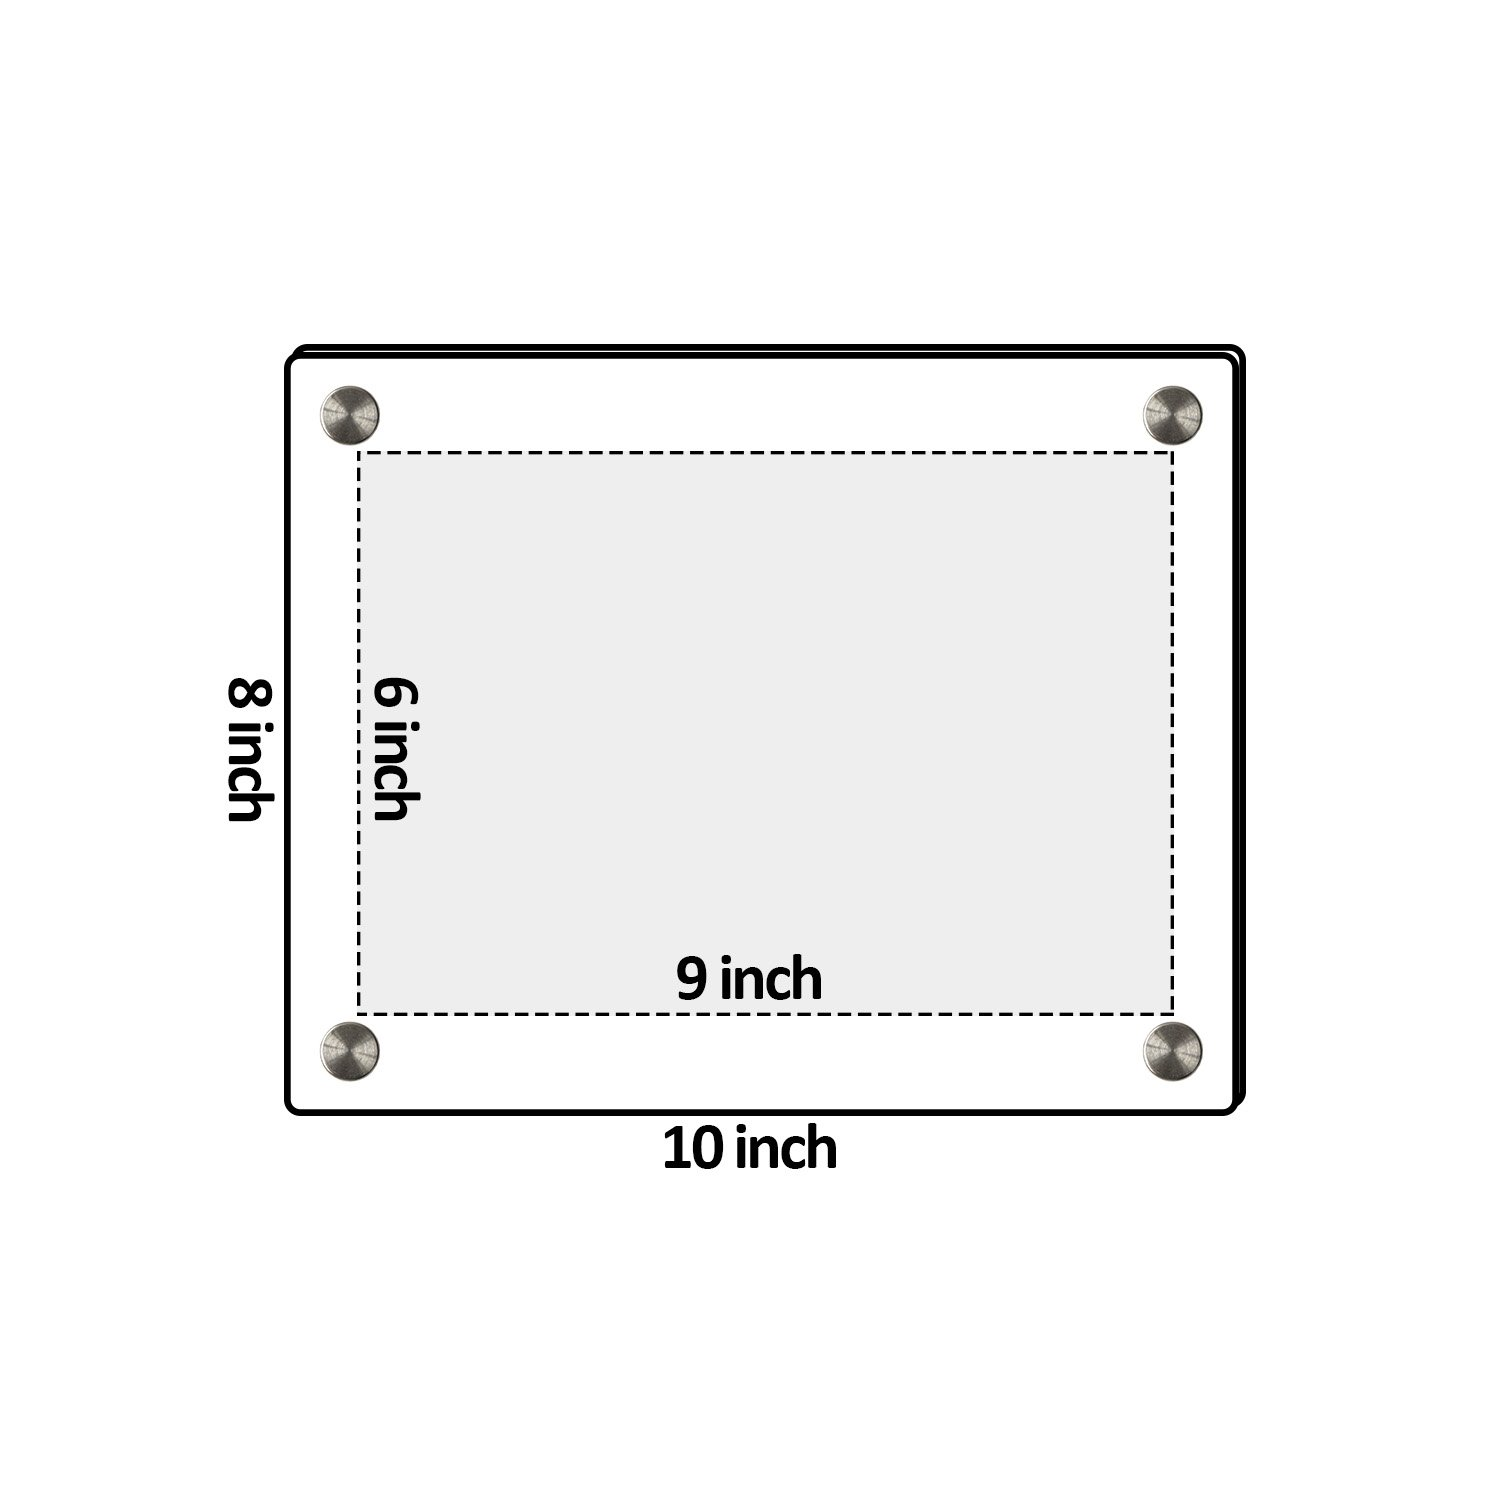 NIUBEE 6x9 Clear Acrylic Wall Mount Picture Frame Floating Frames